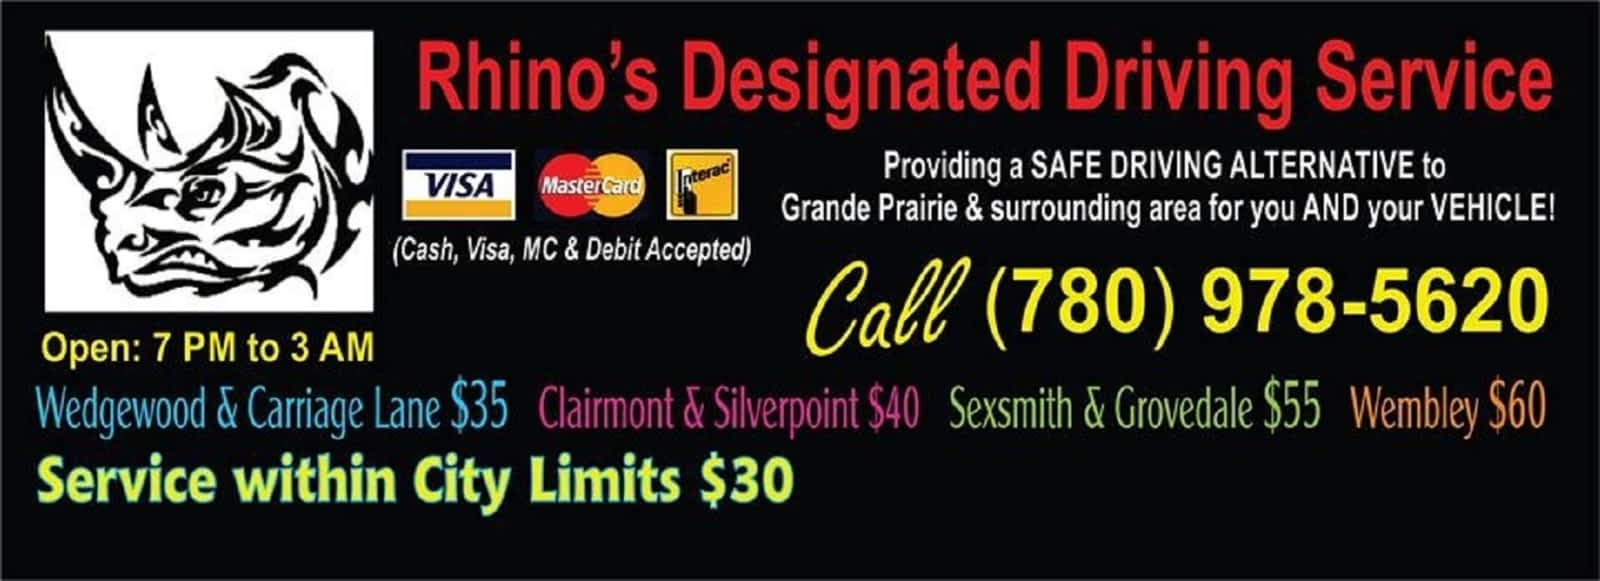 Rhinos Designated Driving Service - Opening Hours - 8002 112